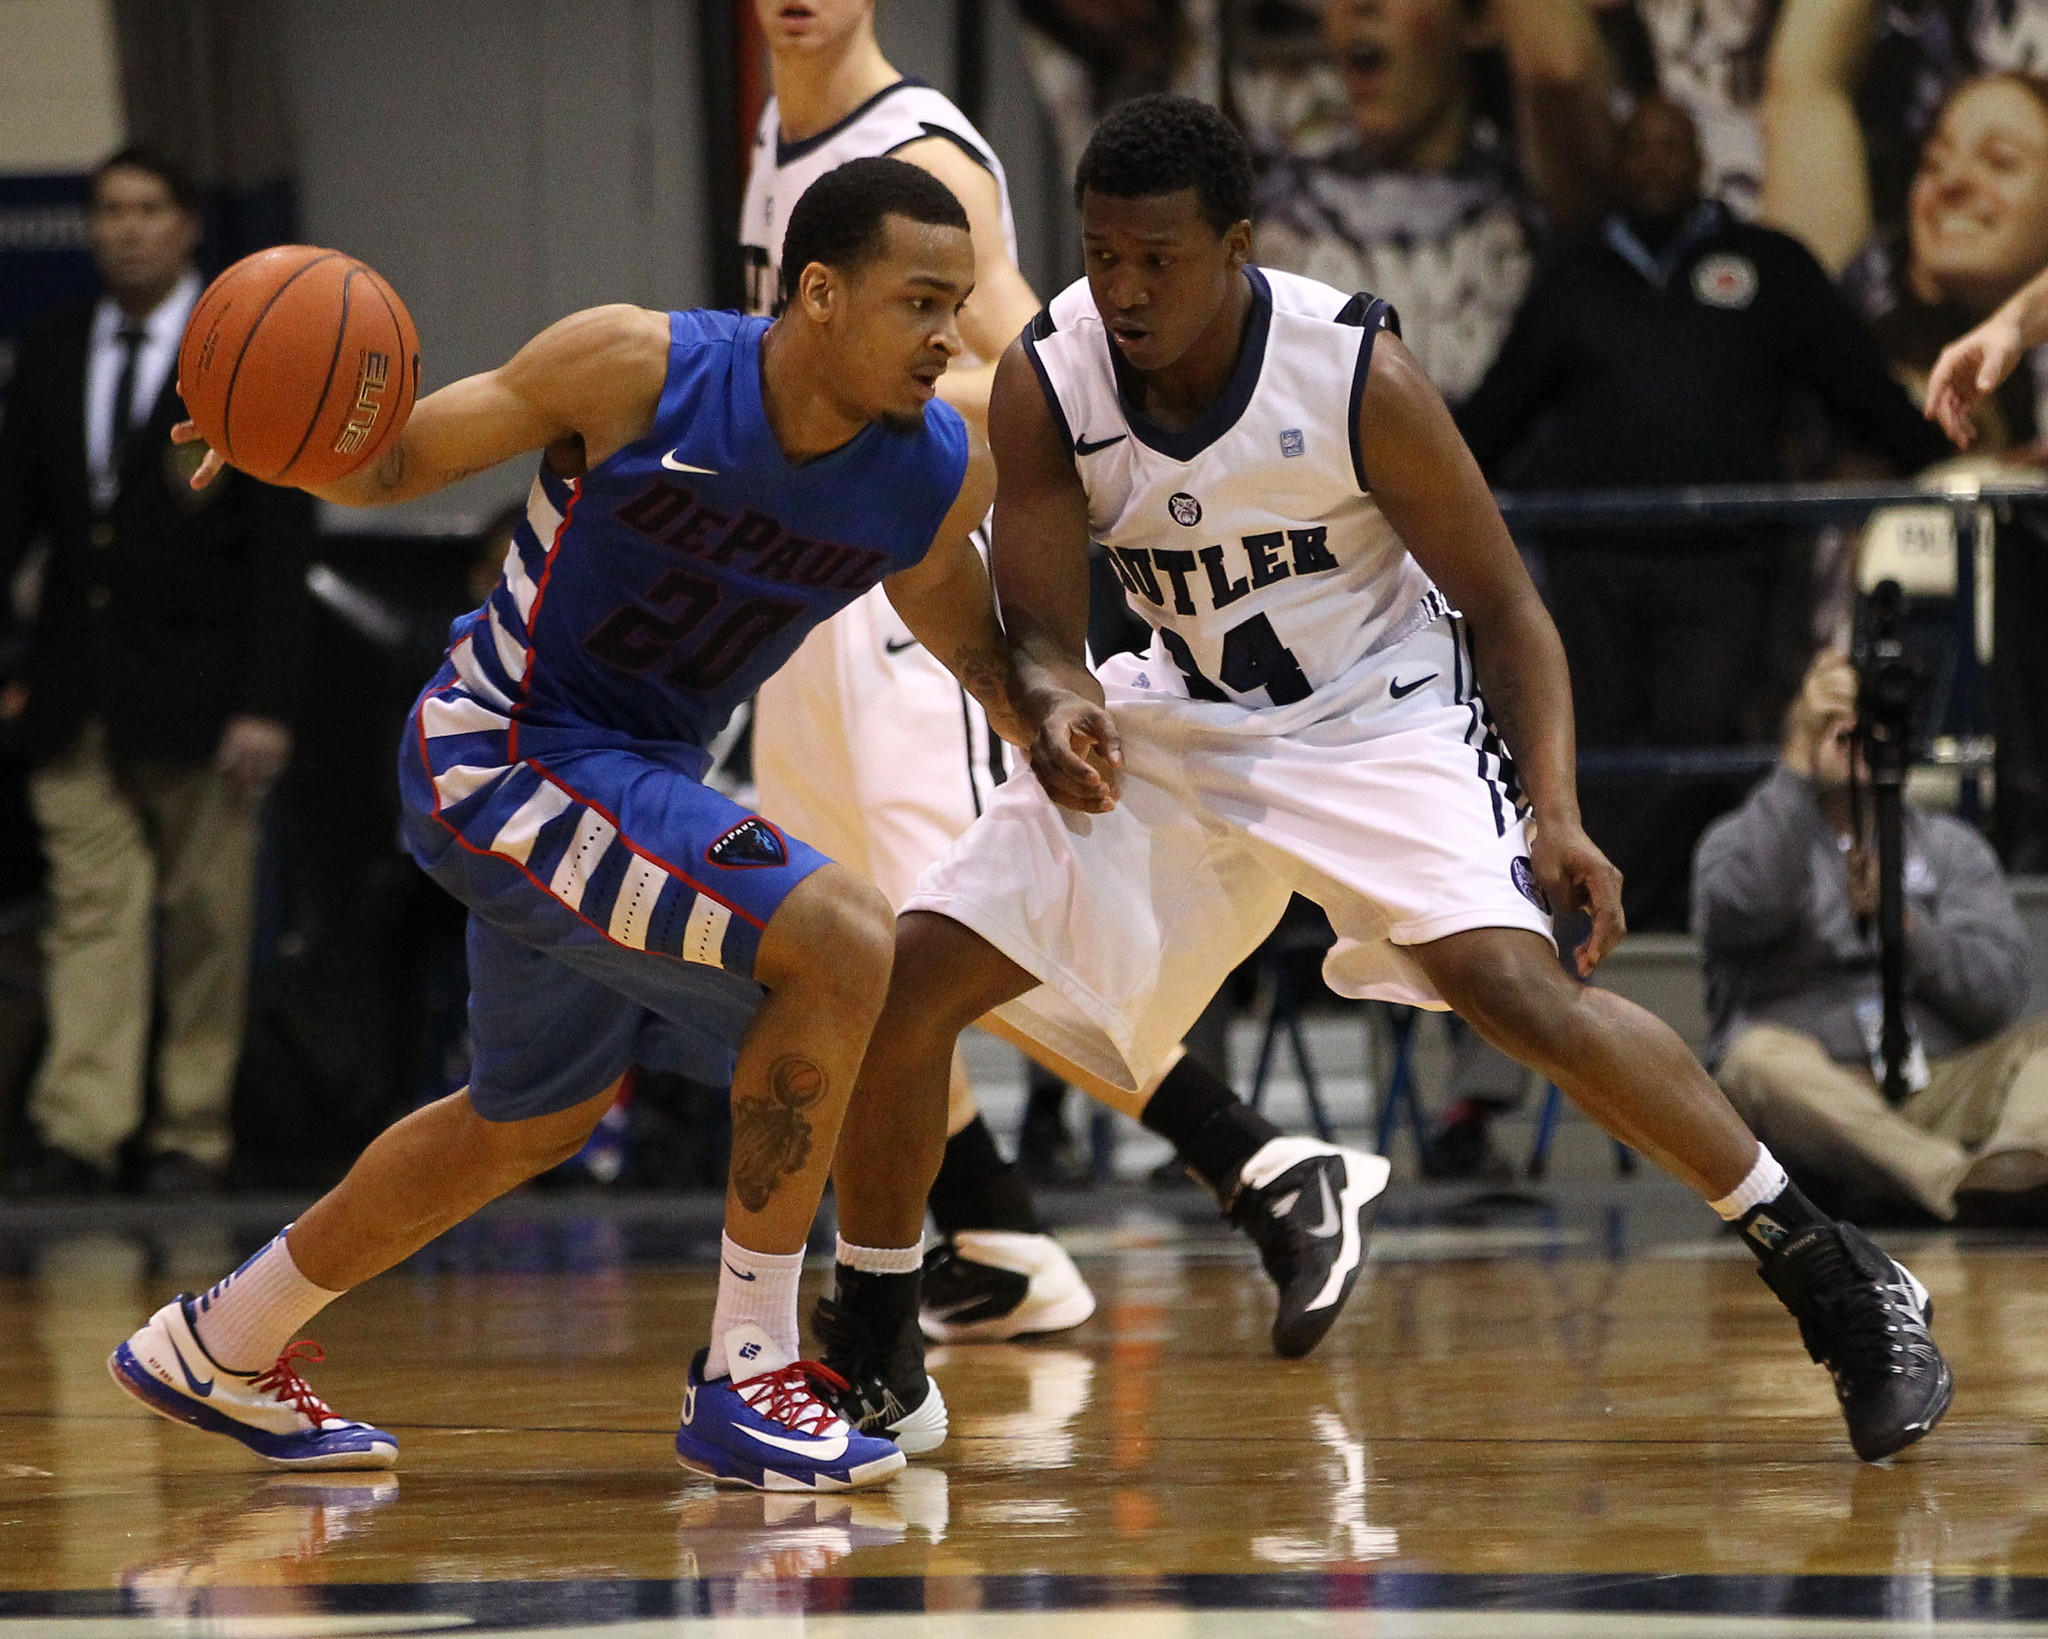 DePaul Blue Demons guard Brandon Young (20) dribbles the ball with Butler Bulldogs guard Rene Castro (14) defending during the second half at Hinkle Fieldhouse. DePaul won 99-94 in double overtime.